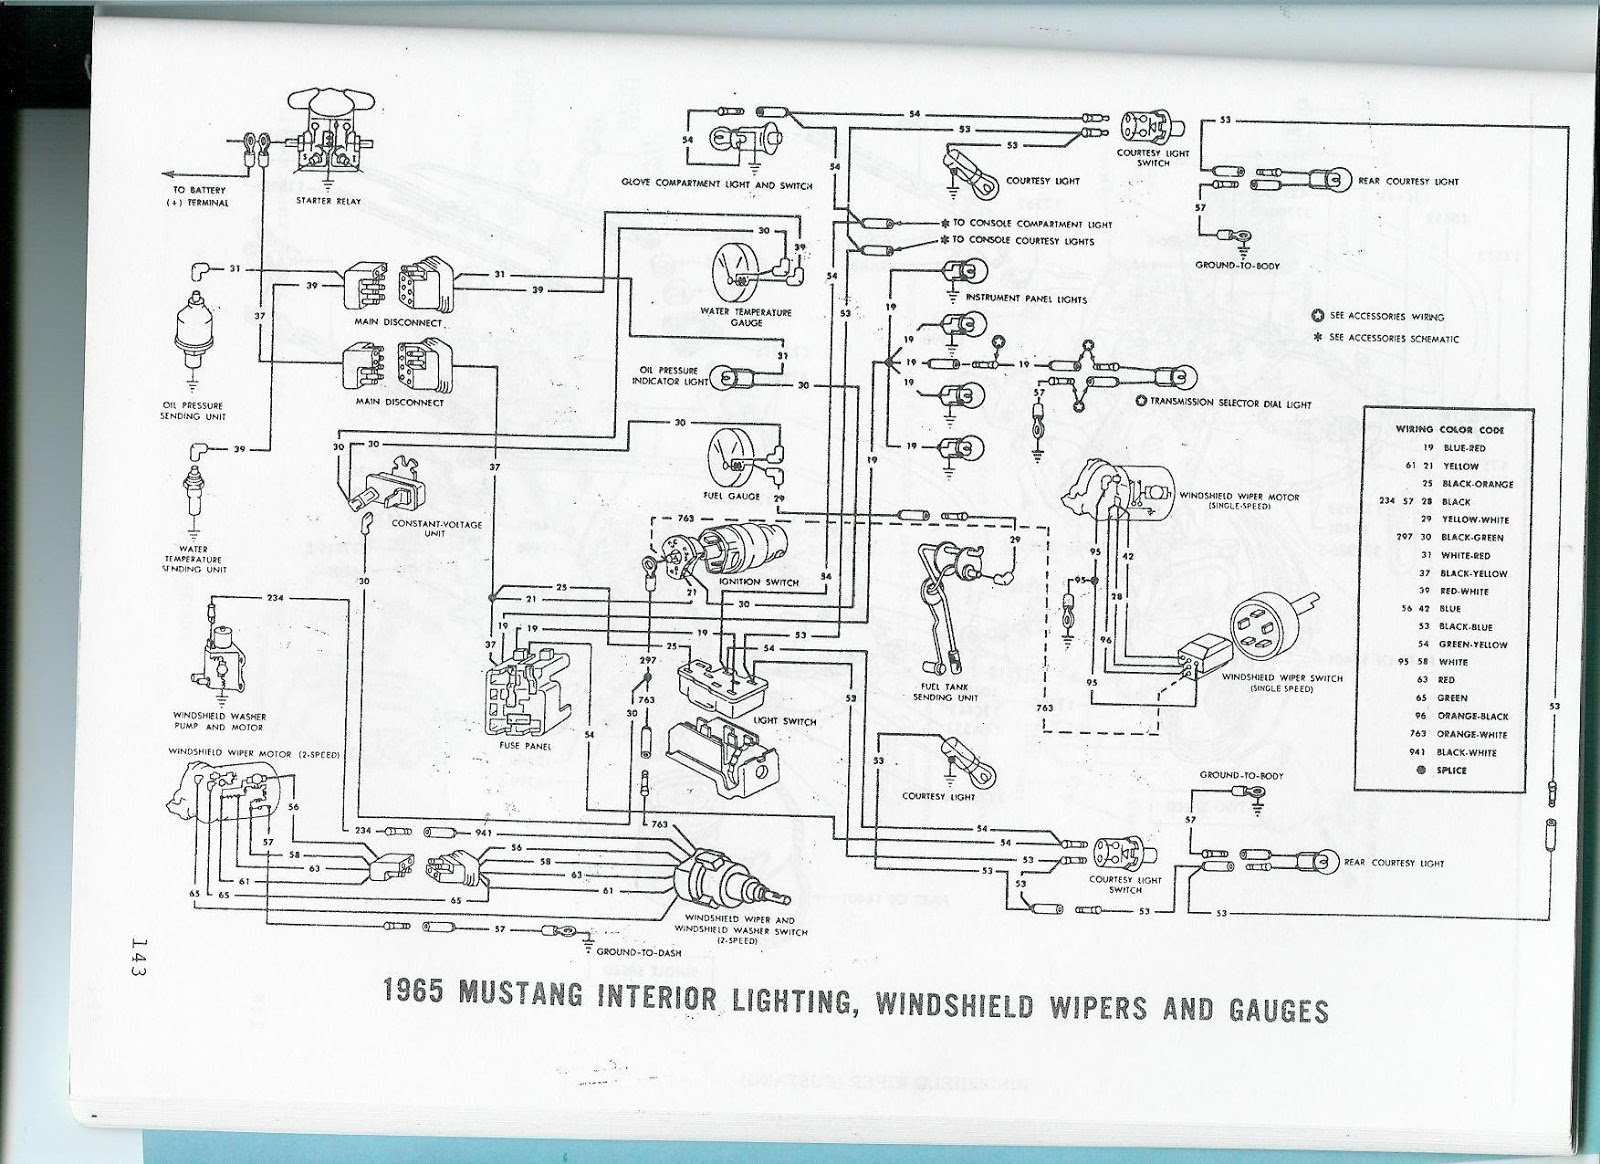 the care and feeding of ponies 1965 mustang wiring diagrams 1966 chevelle 1965 chevelle fuse block [ 1600 x 1164 Pixel ]